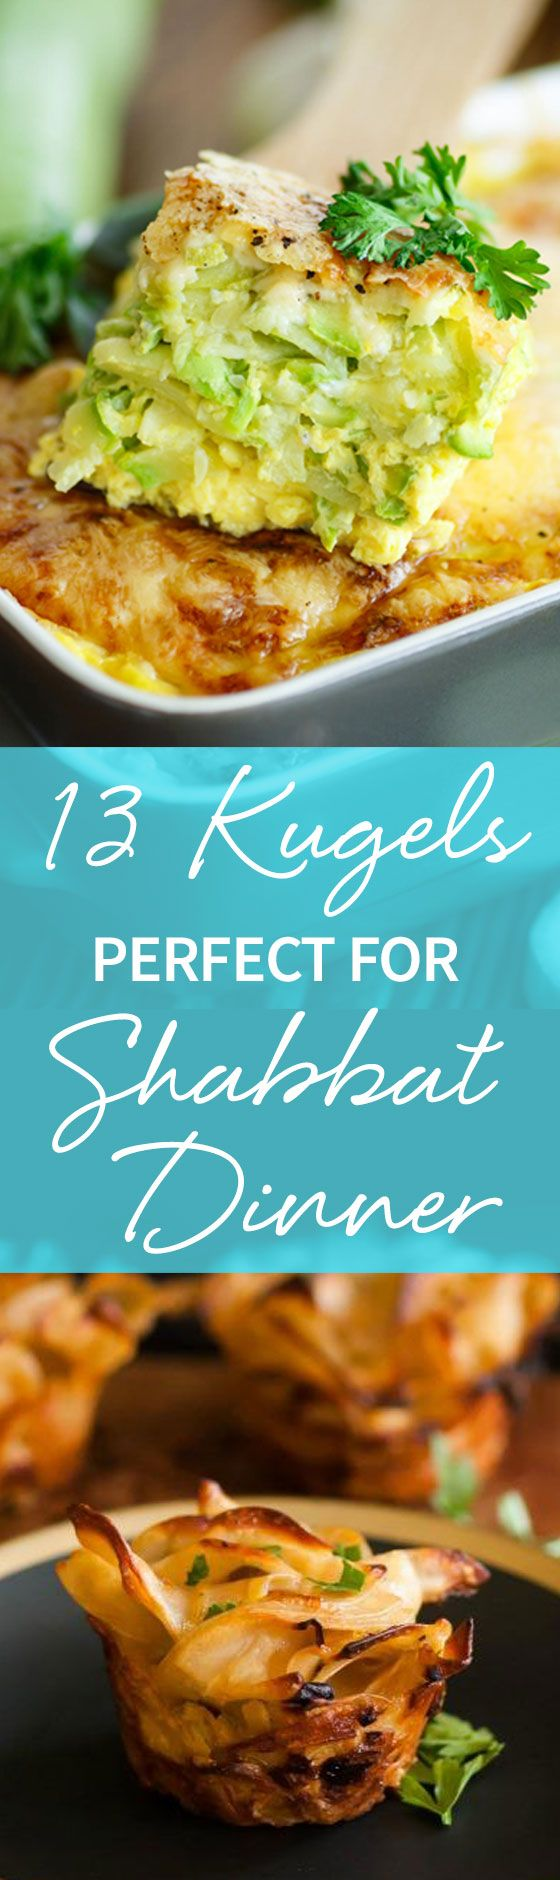 Kugels are great because they can be made ahead, frozen for long periods of time, and reheated--making them the perfect Shabbat side dish! Read on and try any of these 13 recipes! http://www.joyofkosher.com/.preview/cn01faca2070002546?auth=c9a9de647b32bb5f273def126f111e0d7905fd0b&nonce=1478546308593